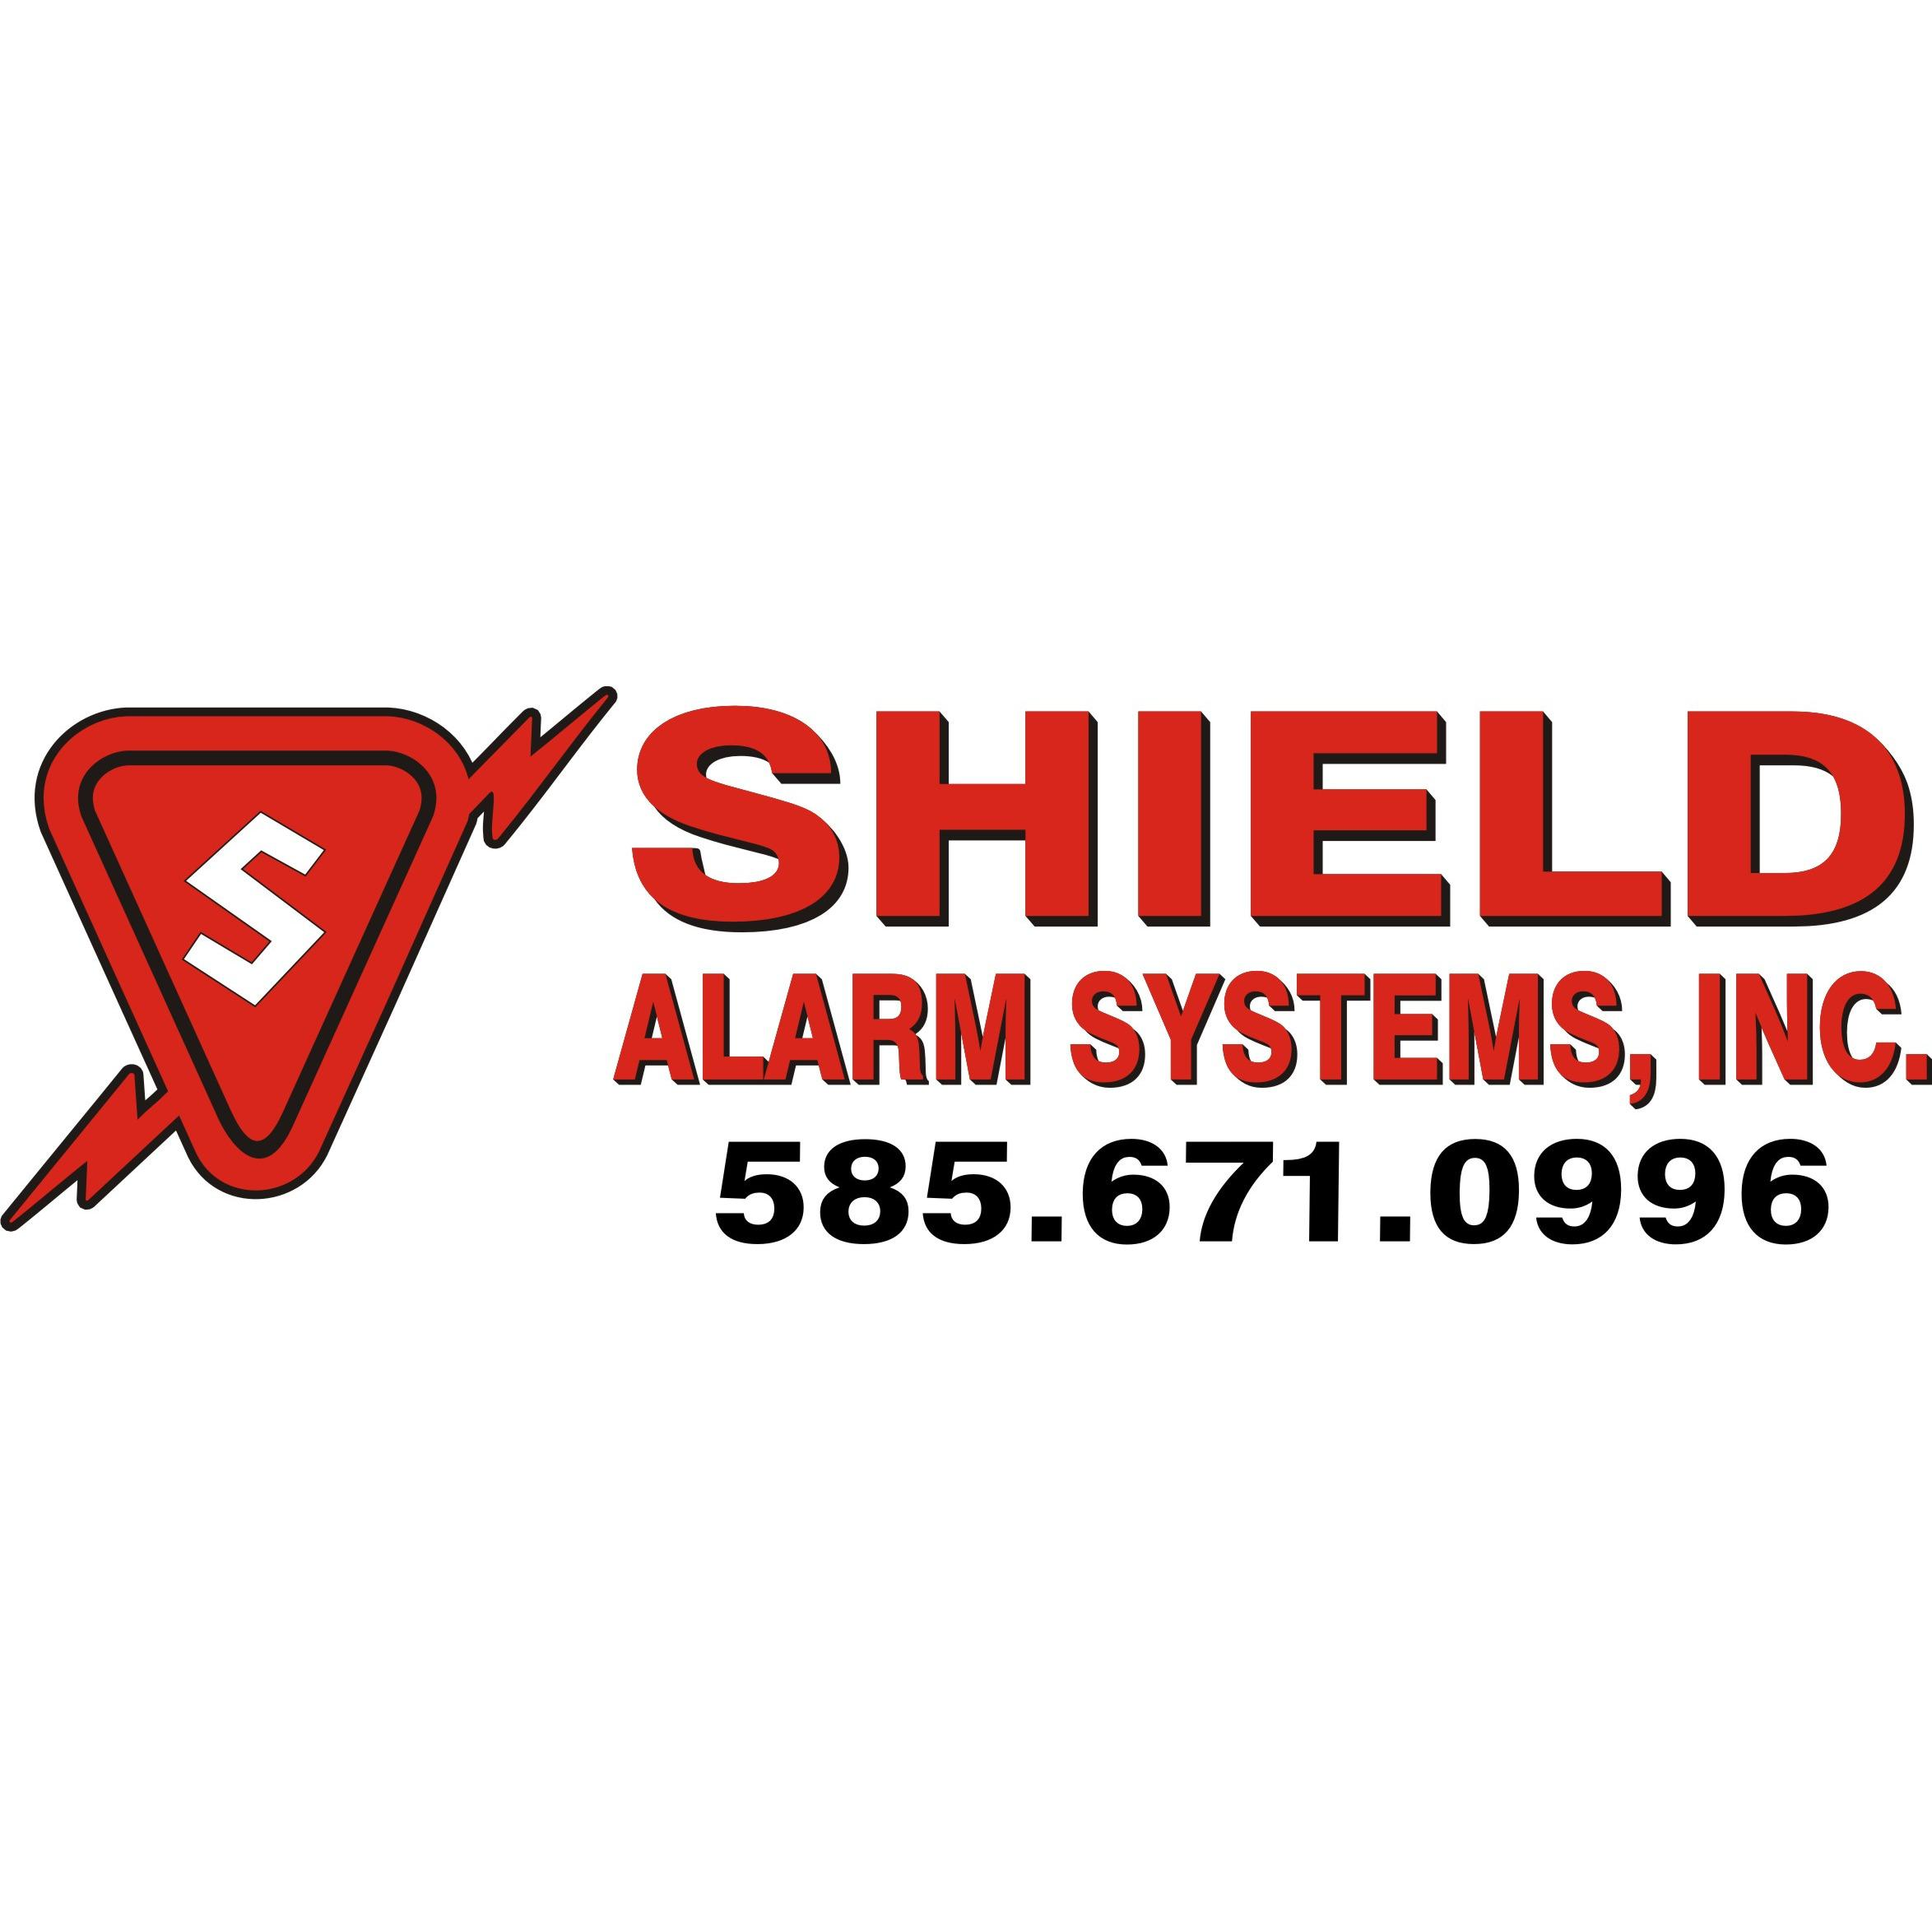 Shield Alarm Systems, Inc. image 3